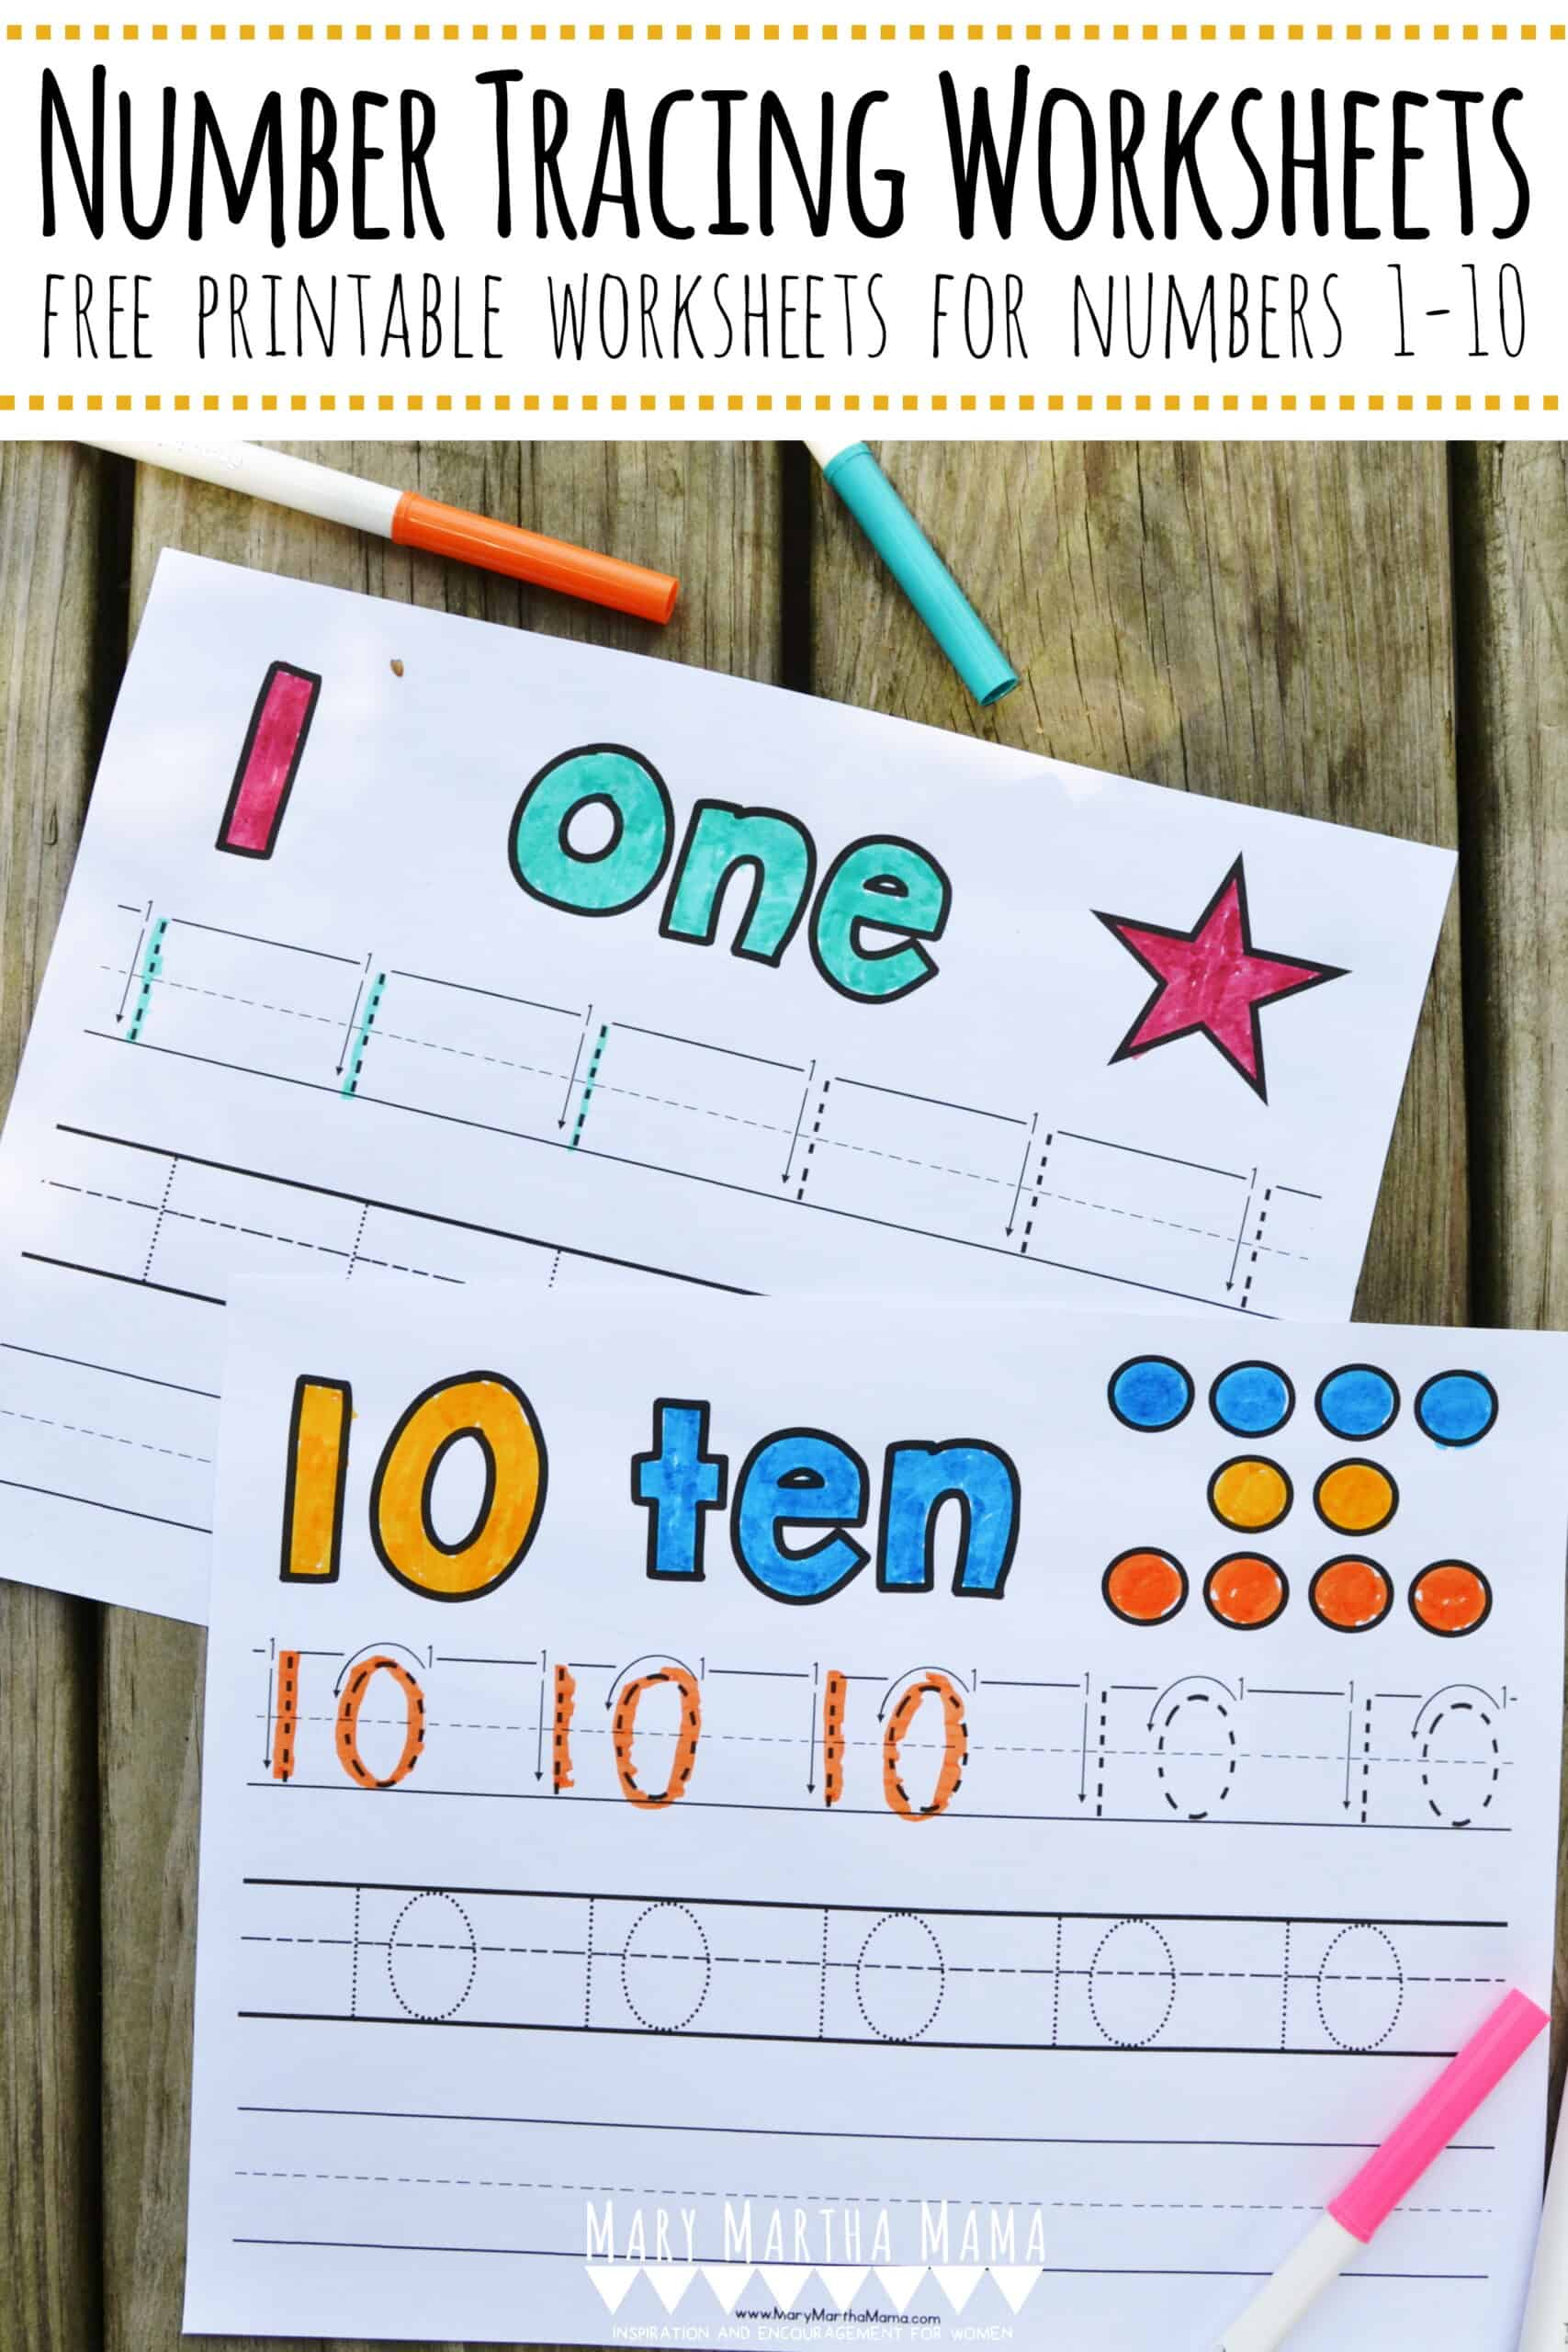 Use these free printable Number Tracing Worksheets 1-10 to help your child learn how to write numbers. Each sheet features tracing and writing practice.